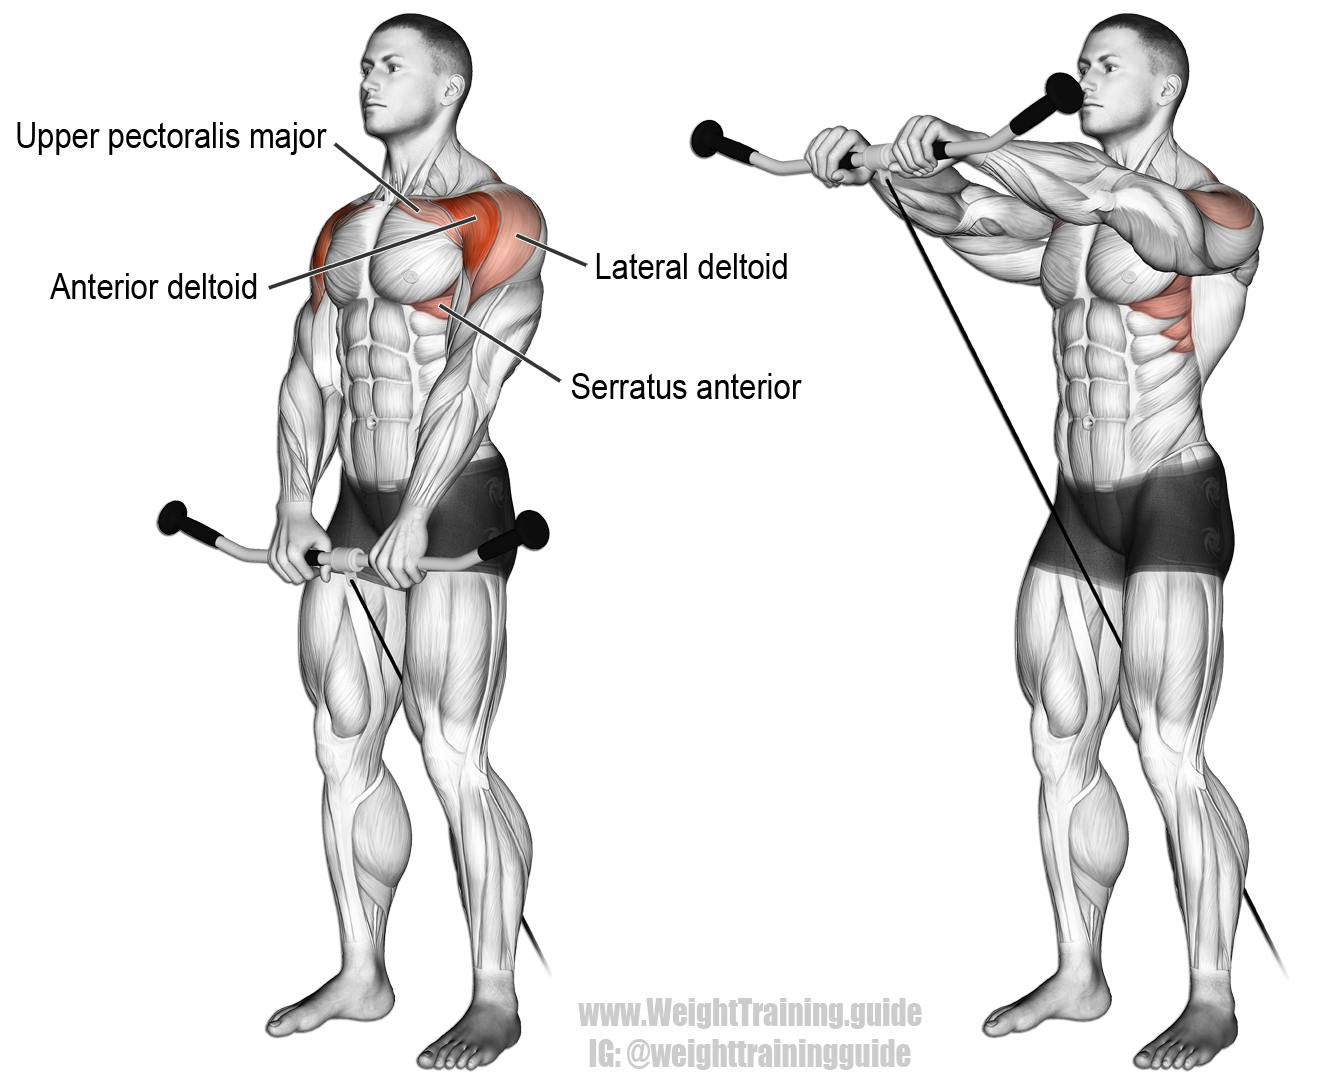 Benches C133370 in addition Exercise Gifs as well Arms together with V Shape Workout With Dumbbells as well 655766395711455775. on upper body dumbbell exercises biceps triceps shoulders workout